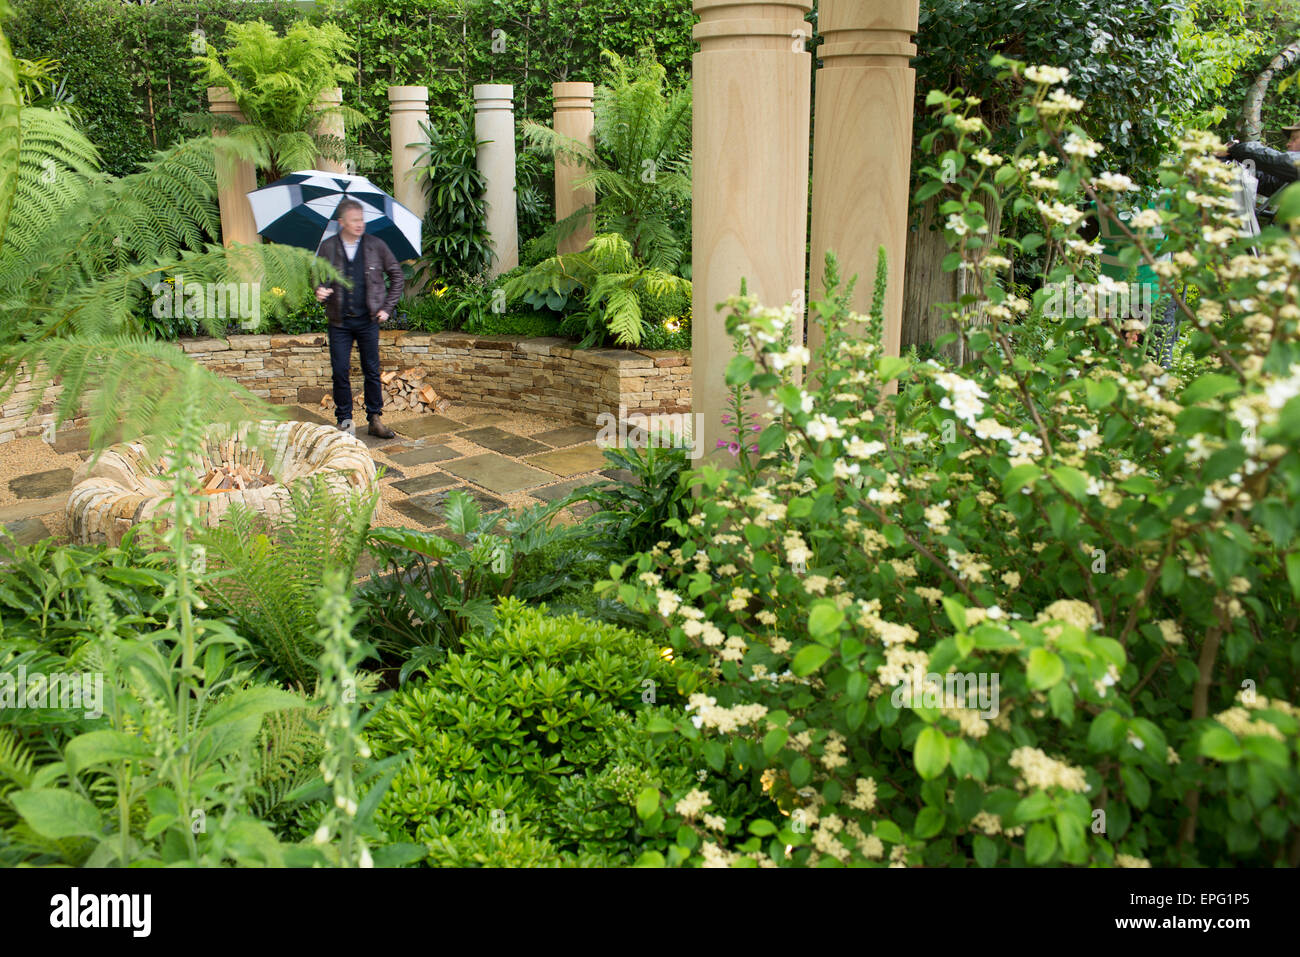 2015 RHS Chelsea Flower Show Press Day, Royal Hospital Chelsea, London, UK. 18th May, 2015. The Time In Between - Stock Image